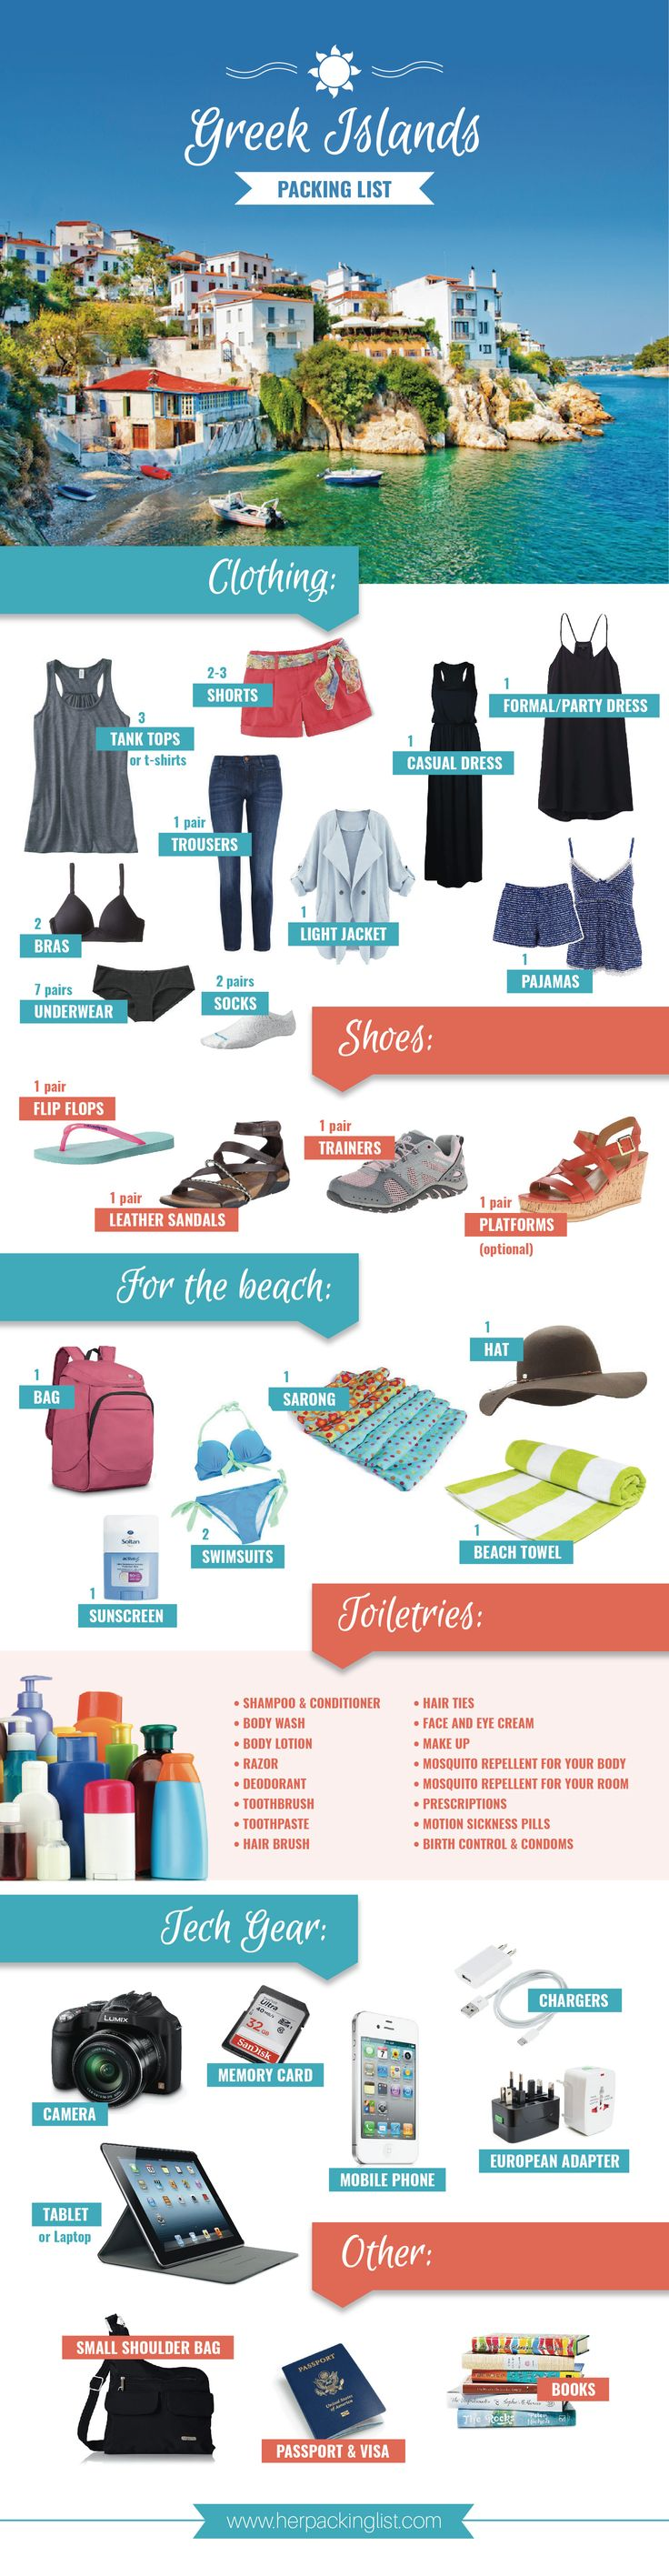 Tips On How To Pack For A Cruise - The ultimate greek islands packing list